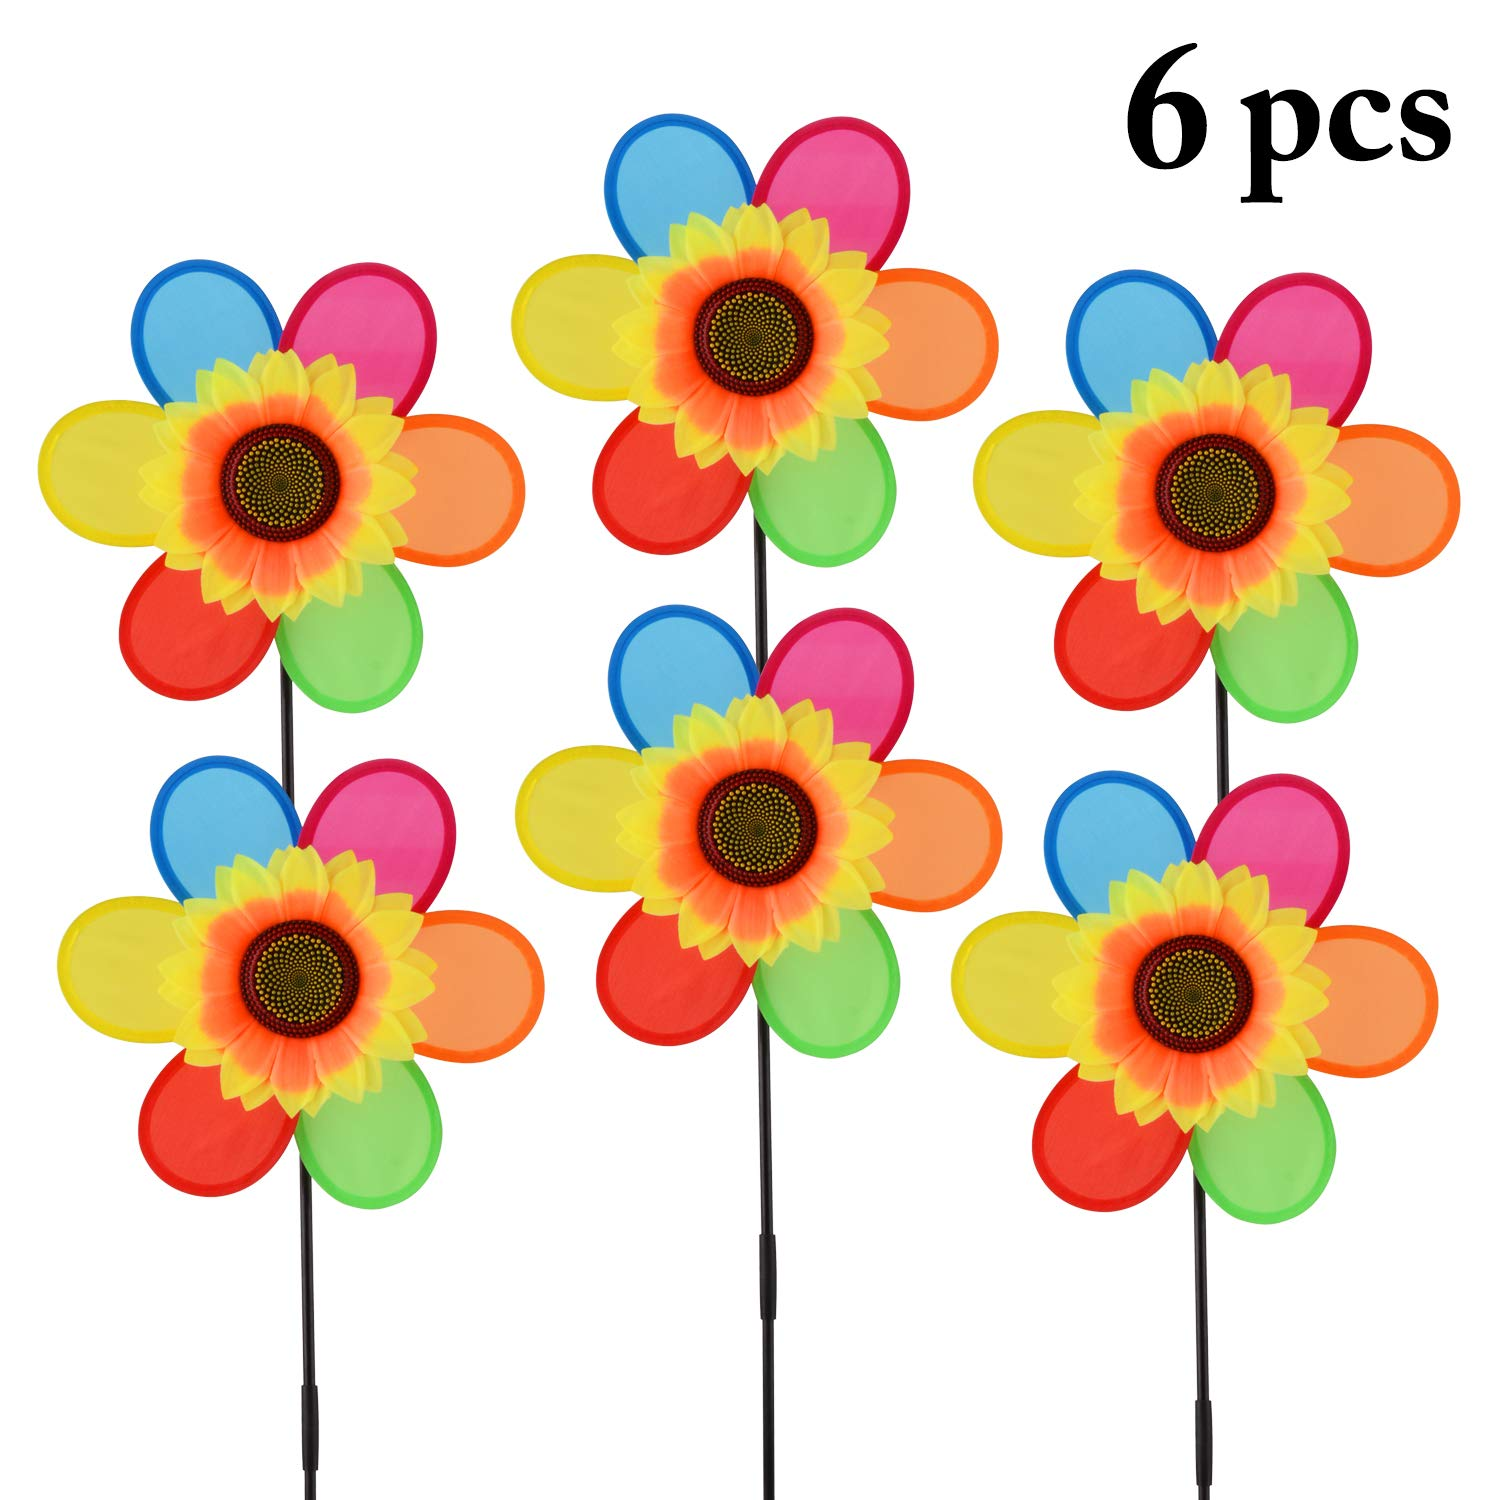 B bangcool Wind Spinners Sunflower Lawn Pinwheels Wind Spinner Windmills Wedding Party Pinwheel for Patio Lawn & Garden (6 Pcs) by B bangcool